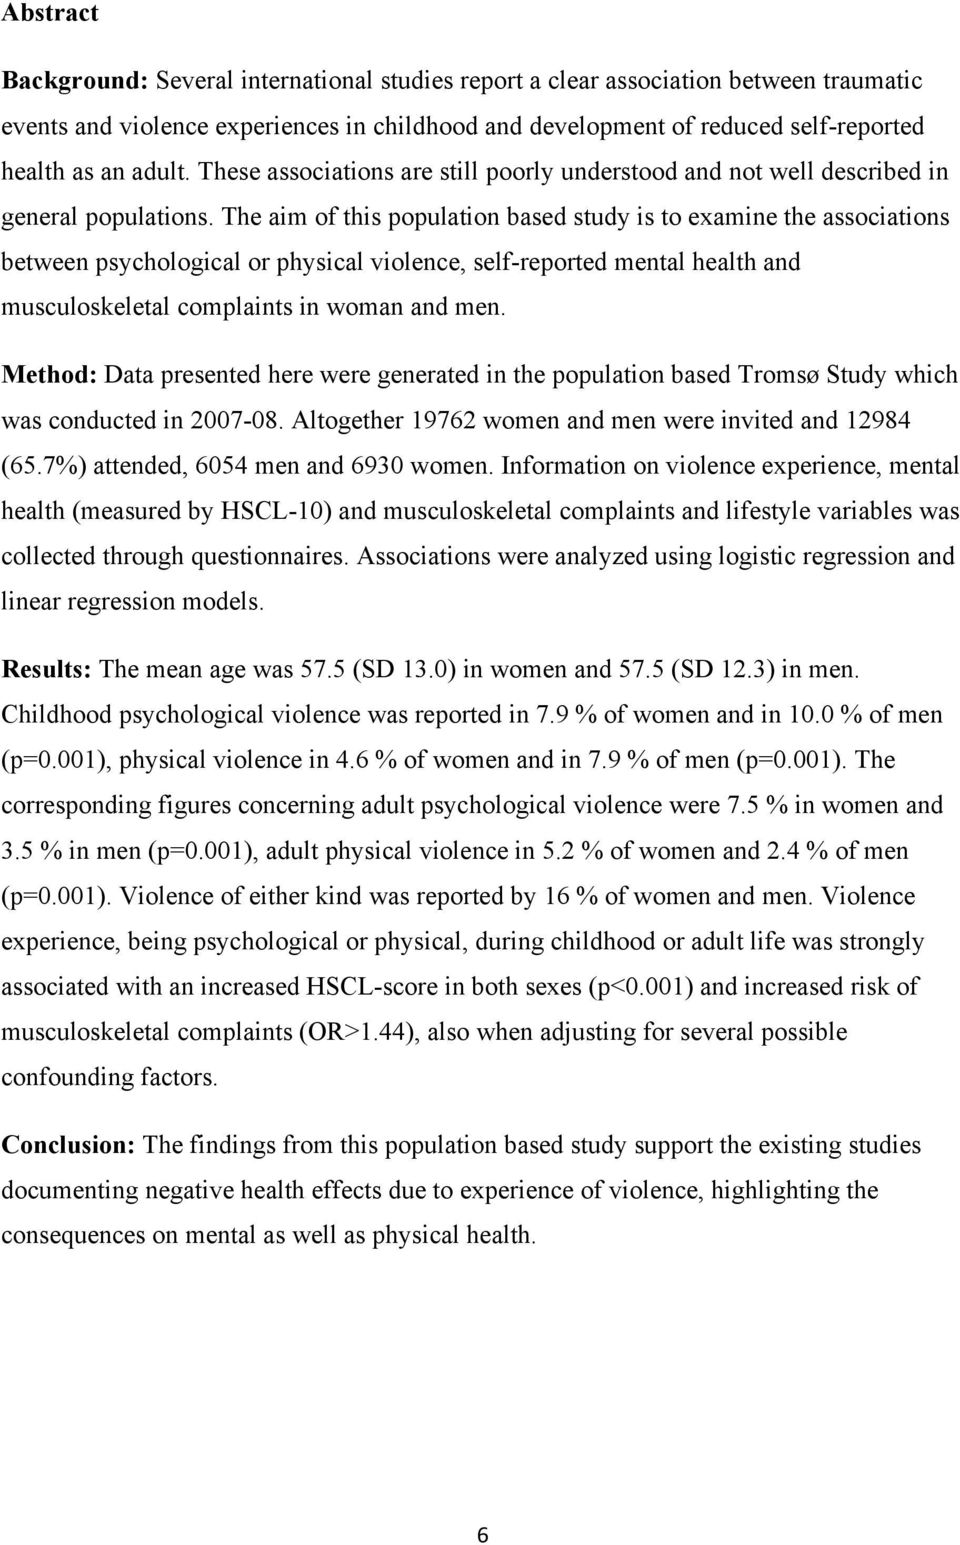 The aim of this population based study is to examine the associations between psychological or physical violence, self-reported mental health and musculoskeletal complaints in woman and men.